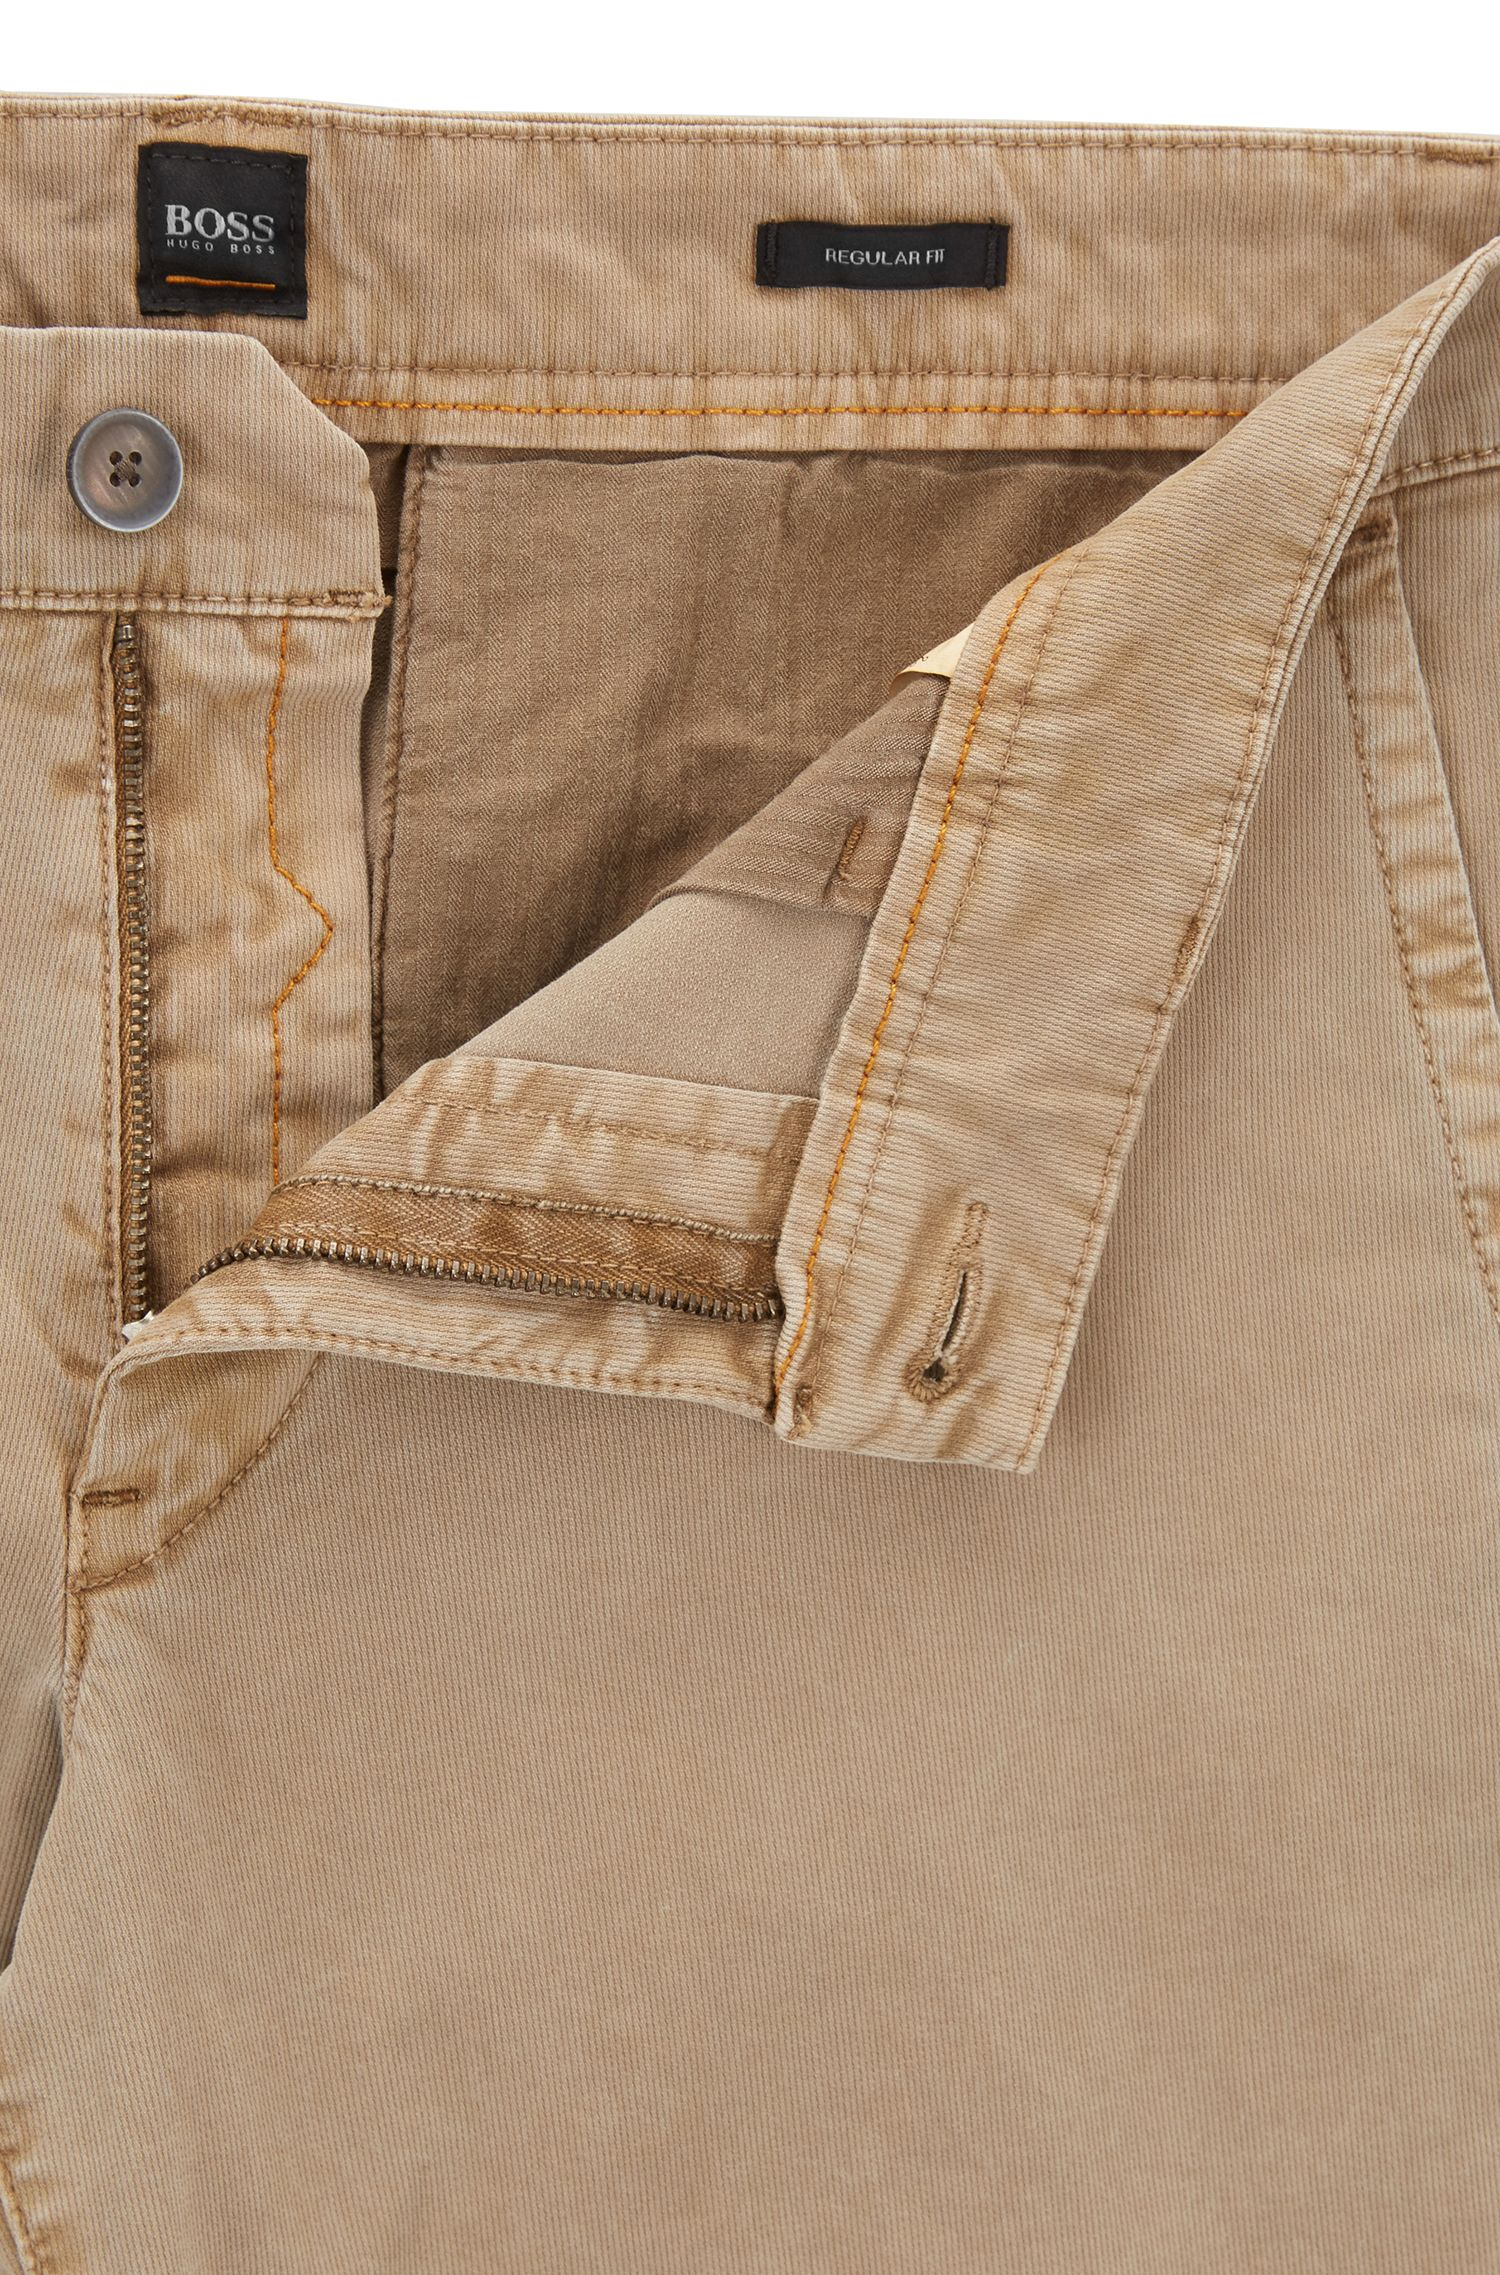 Regular-fit shorts in cotton Bedford corduroy, Beige